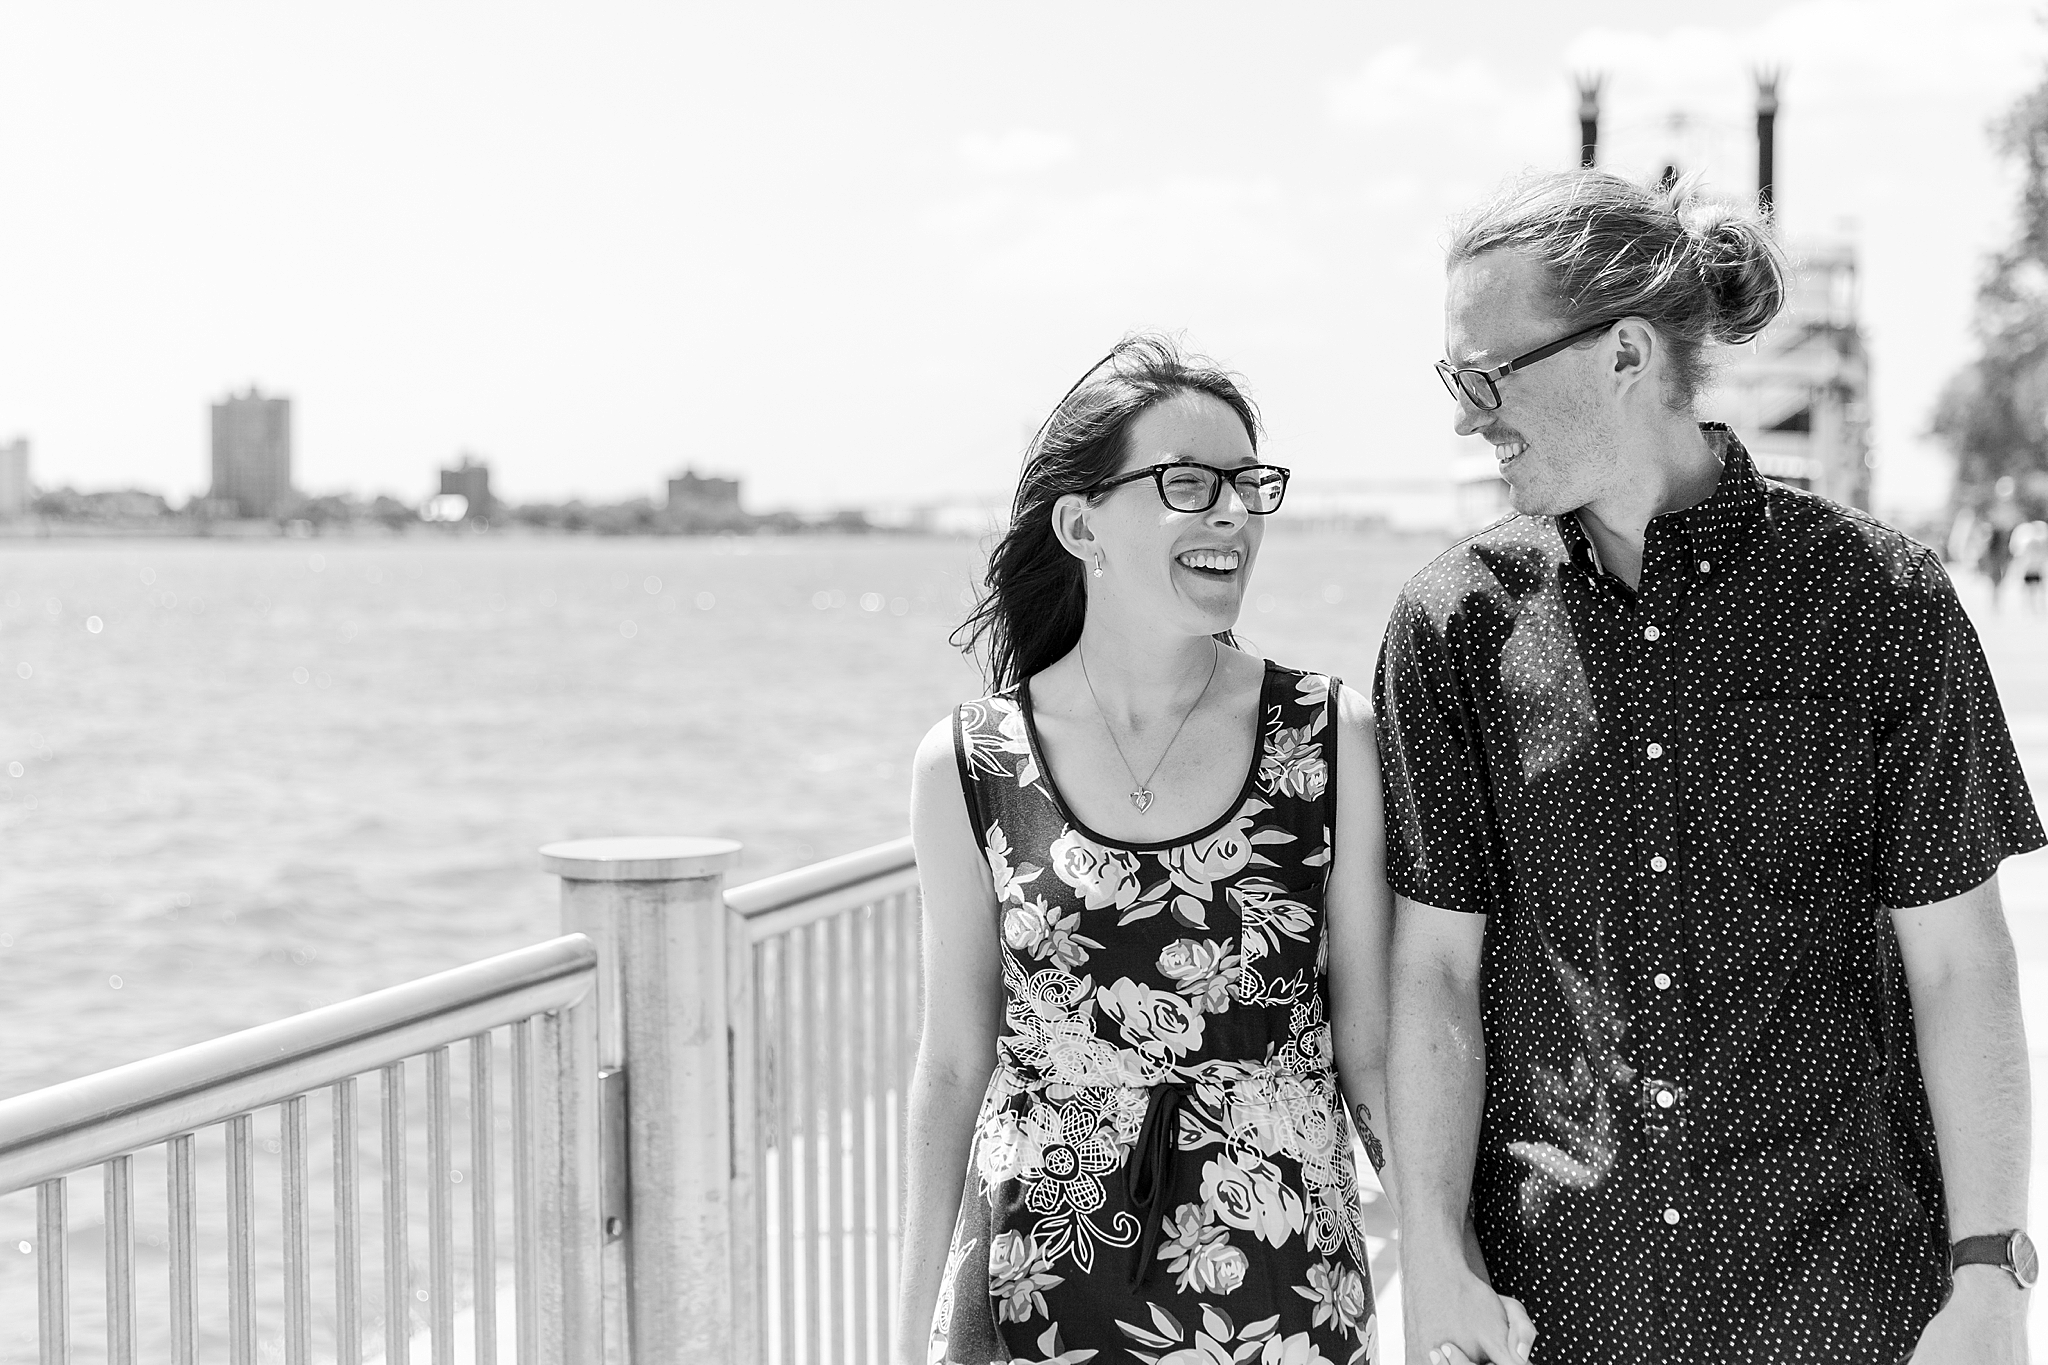 detroit-wedding-photographer-surprise-proposal-in-downtown-detroit-josh-taylor-by-courtney-carolyn-photography_0012.jpg